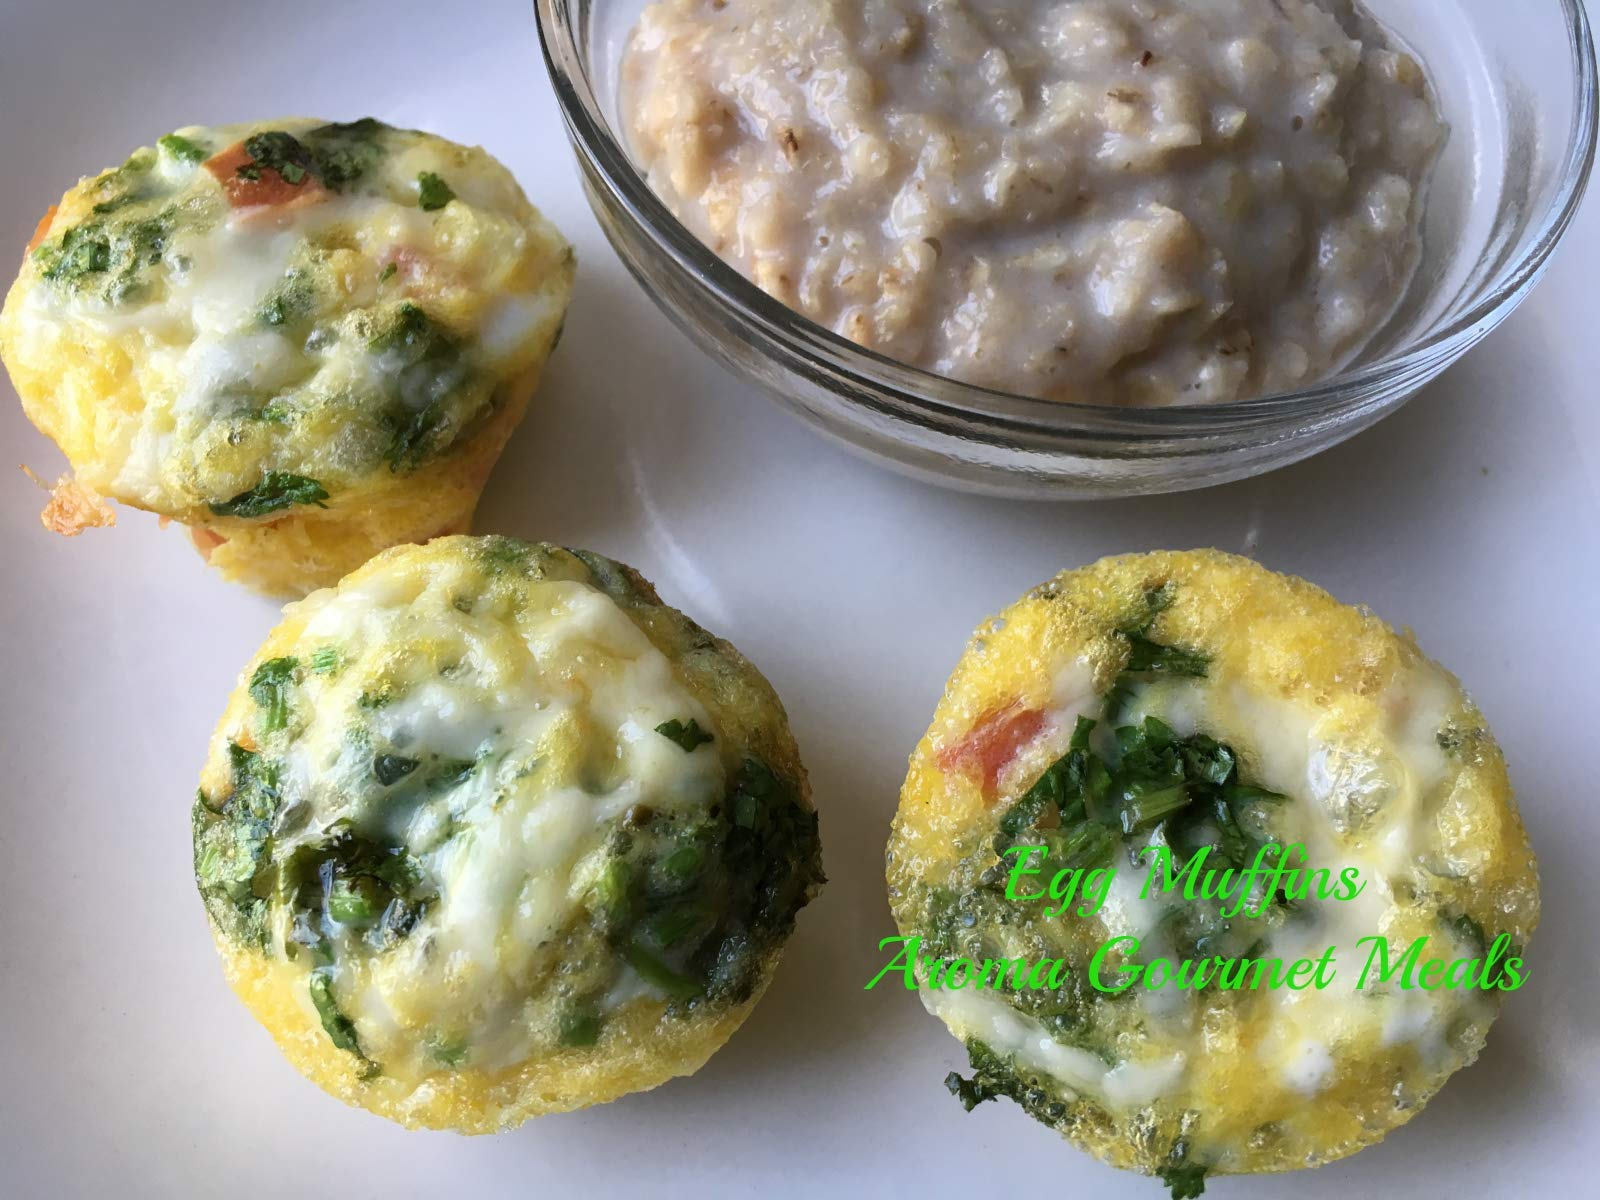 Weekly Meal Box 8 Entrees 2 Breakfast by Meal Kits (Image #7)